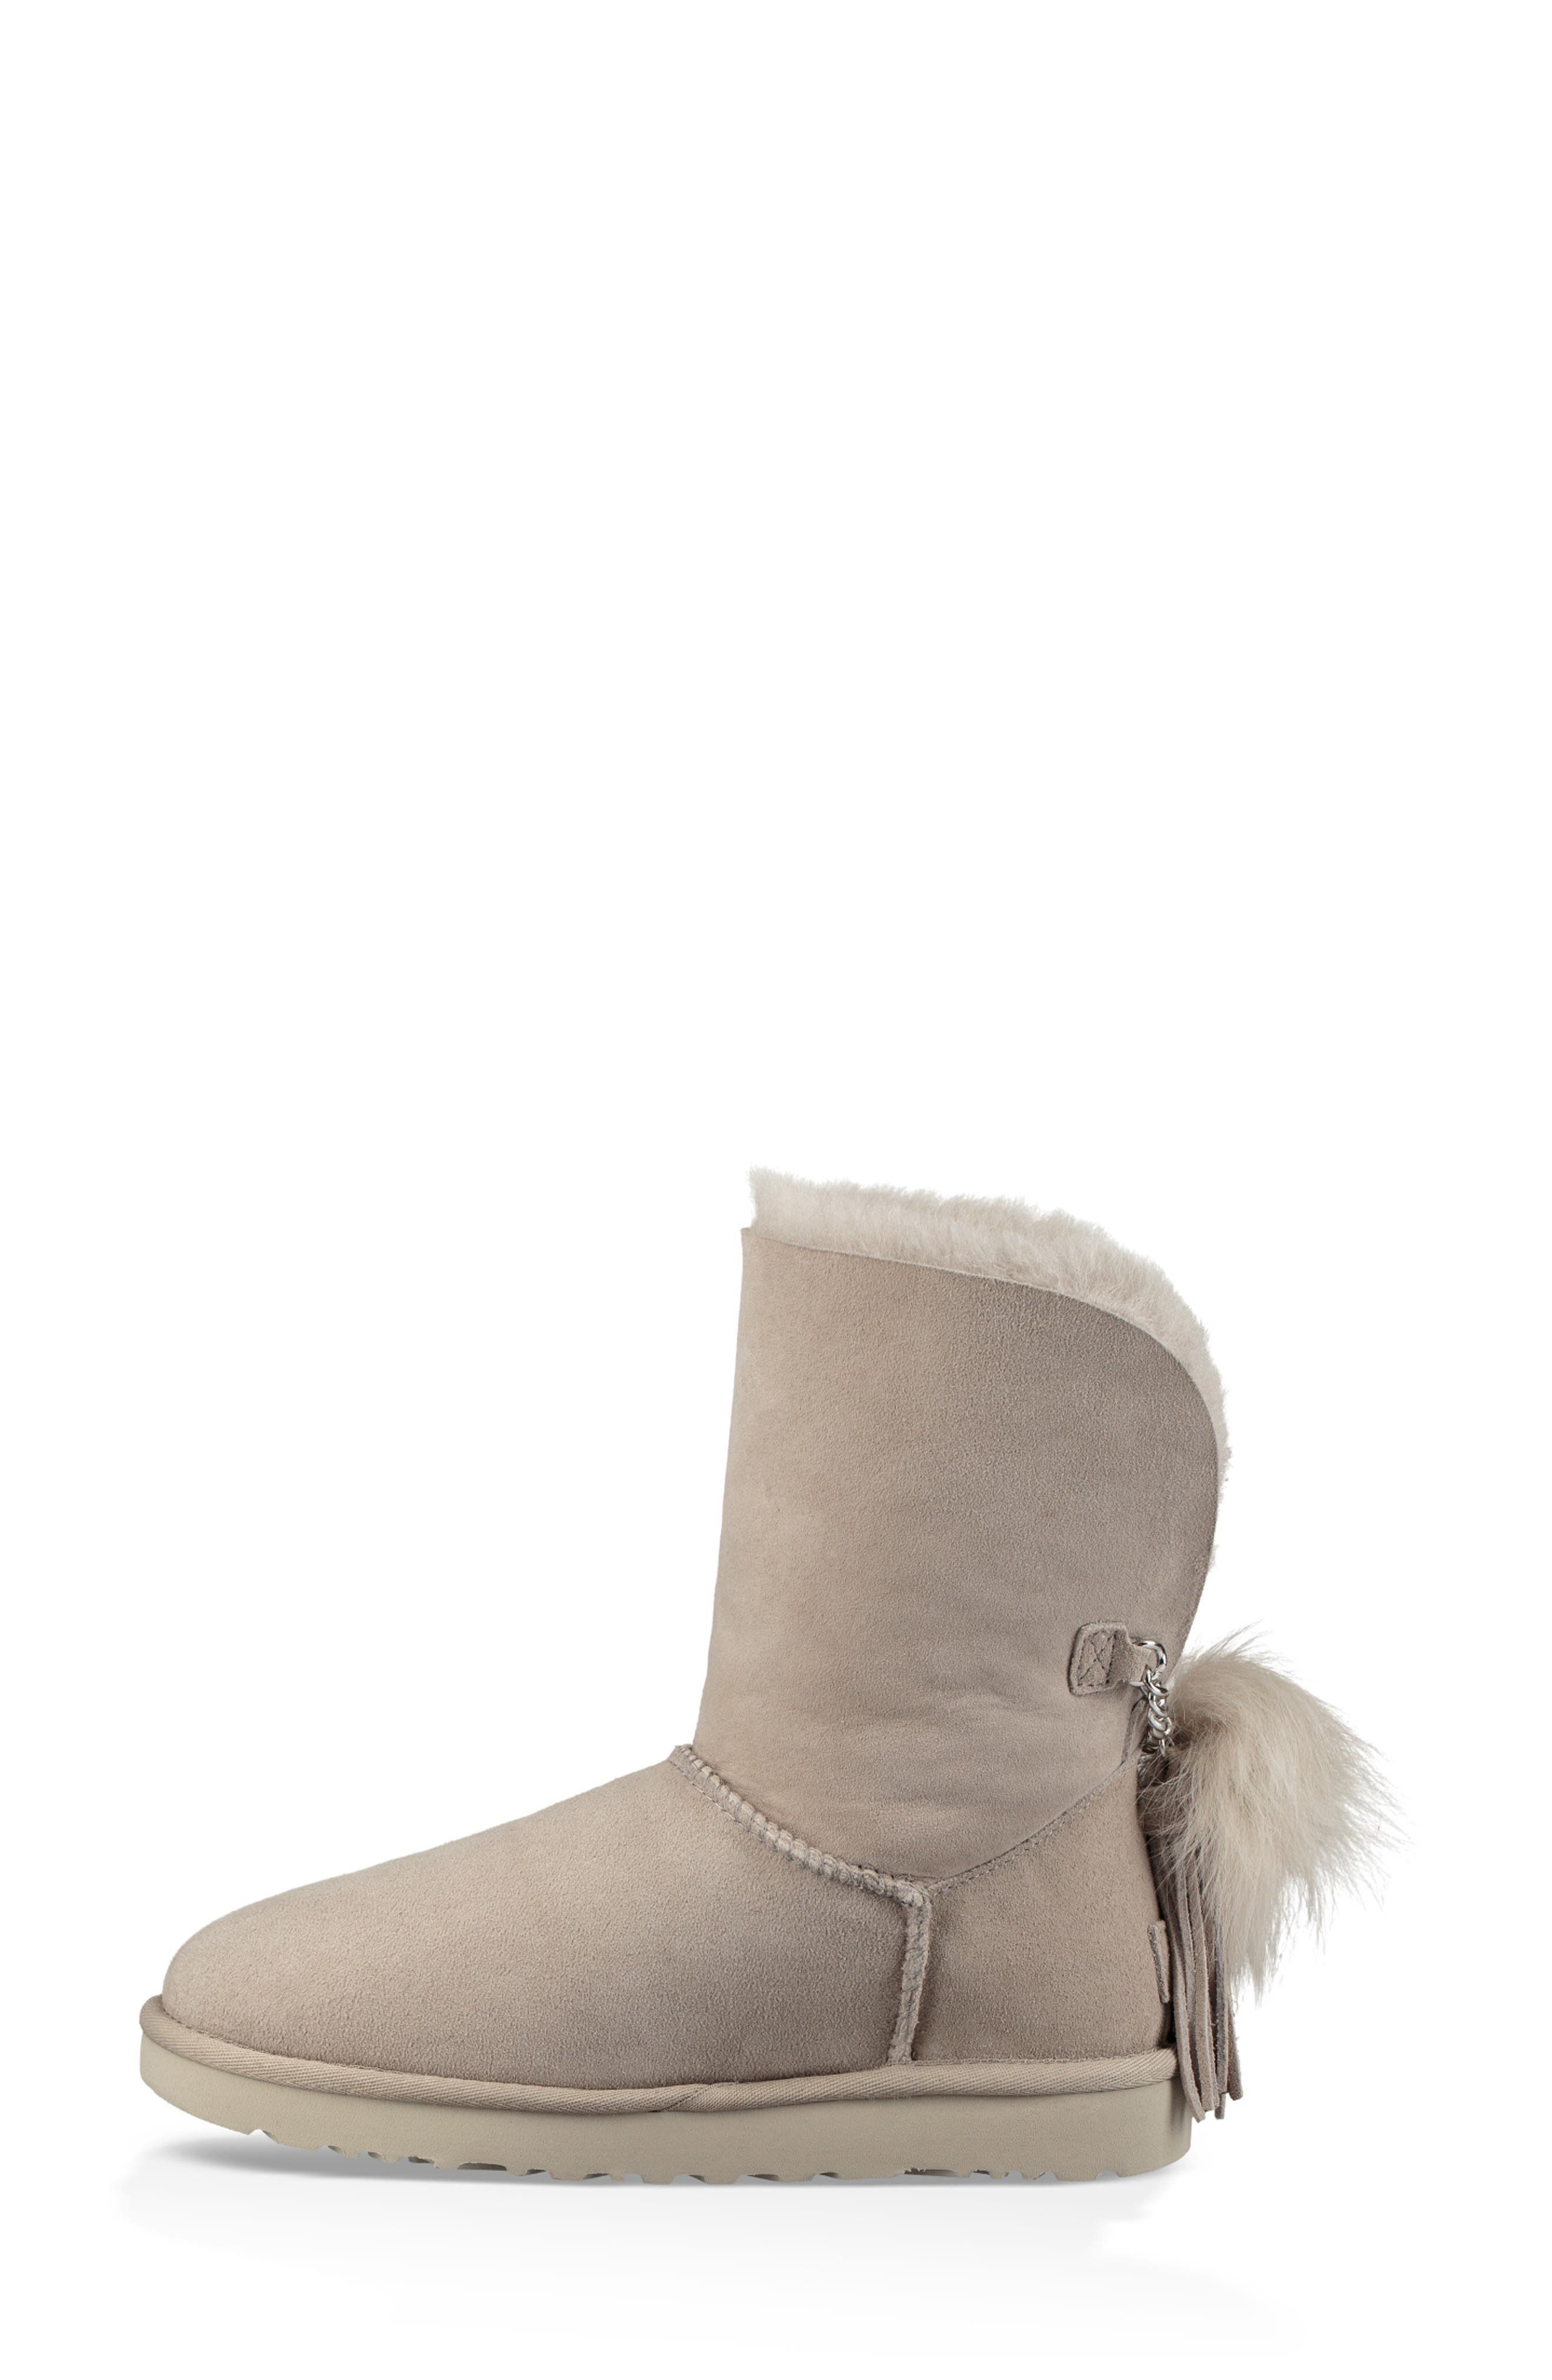 Classic Charm Bootie,                             Alternate thumbnail 6, color,                             WILLOW SUEDE